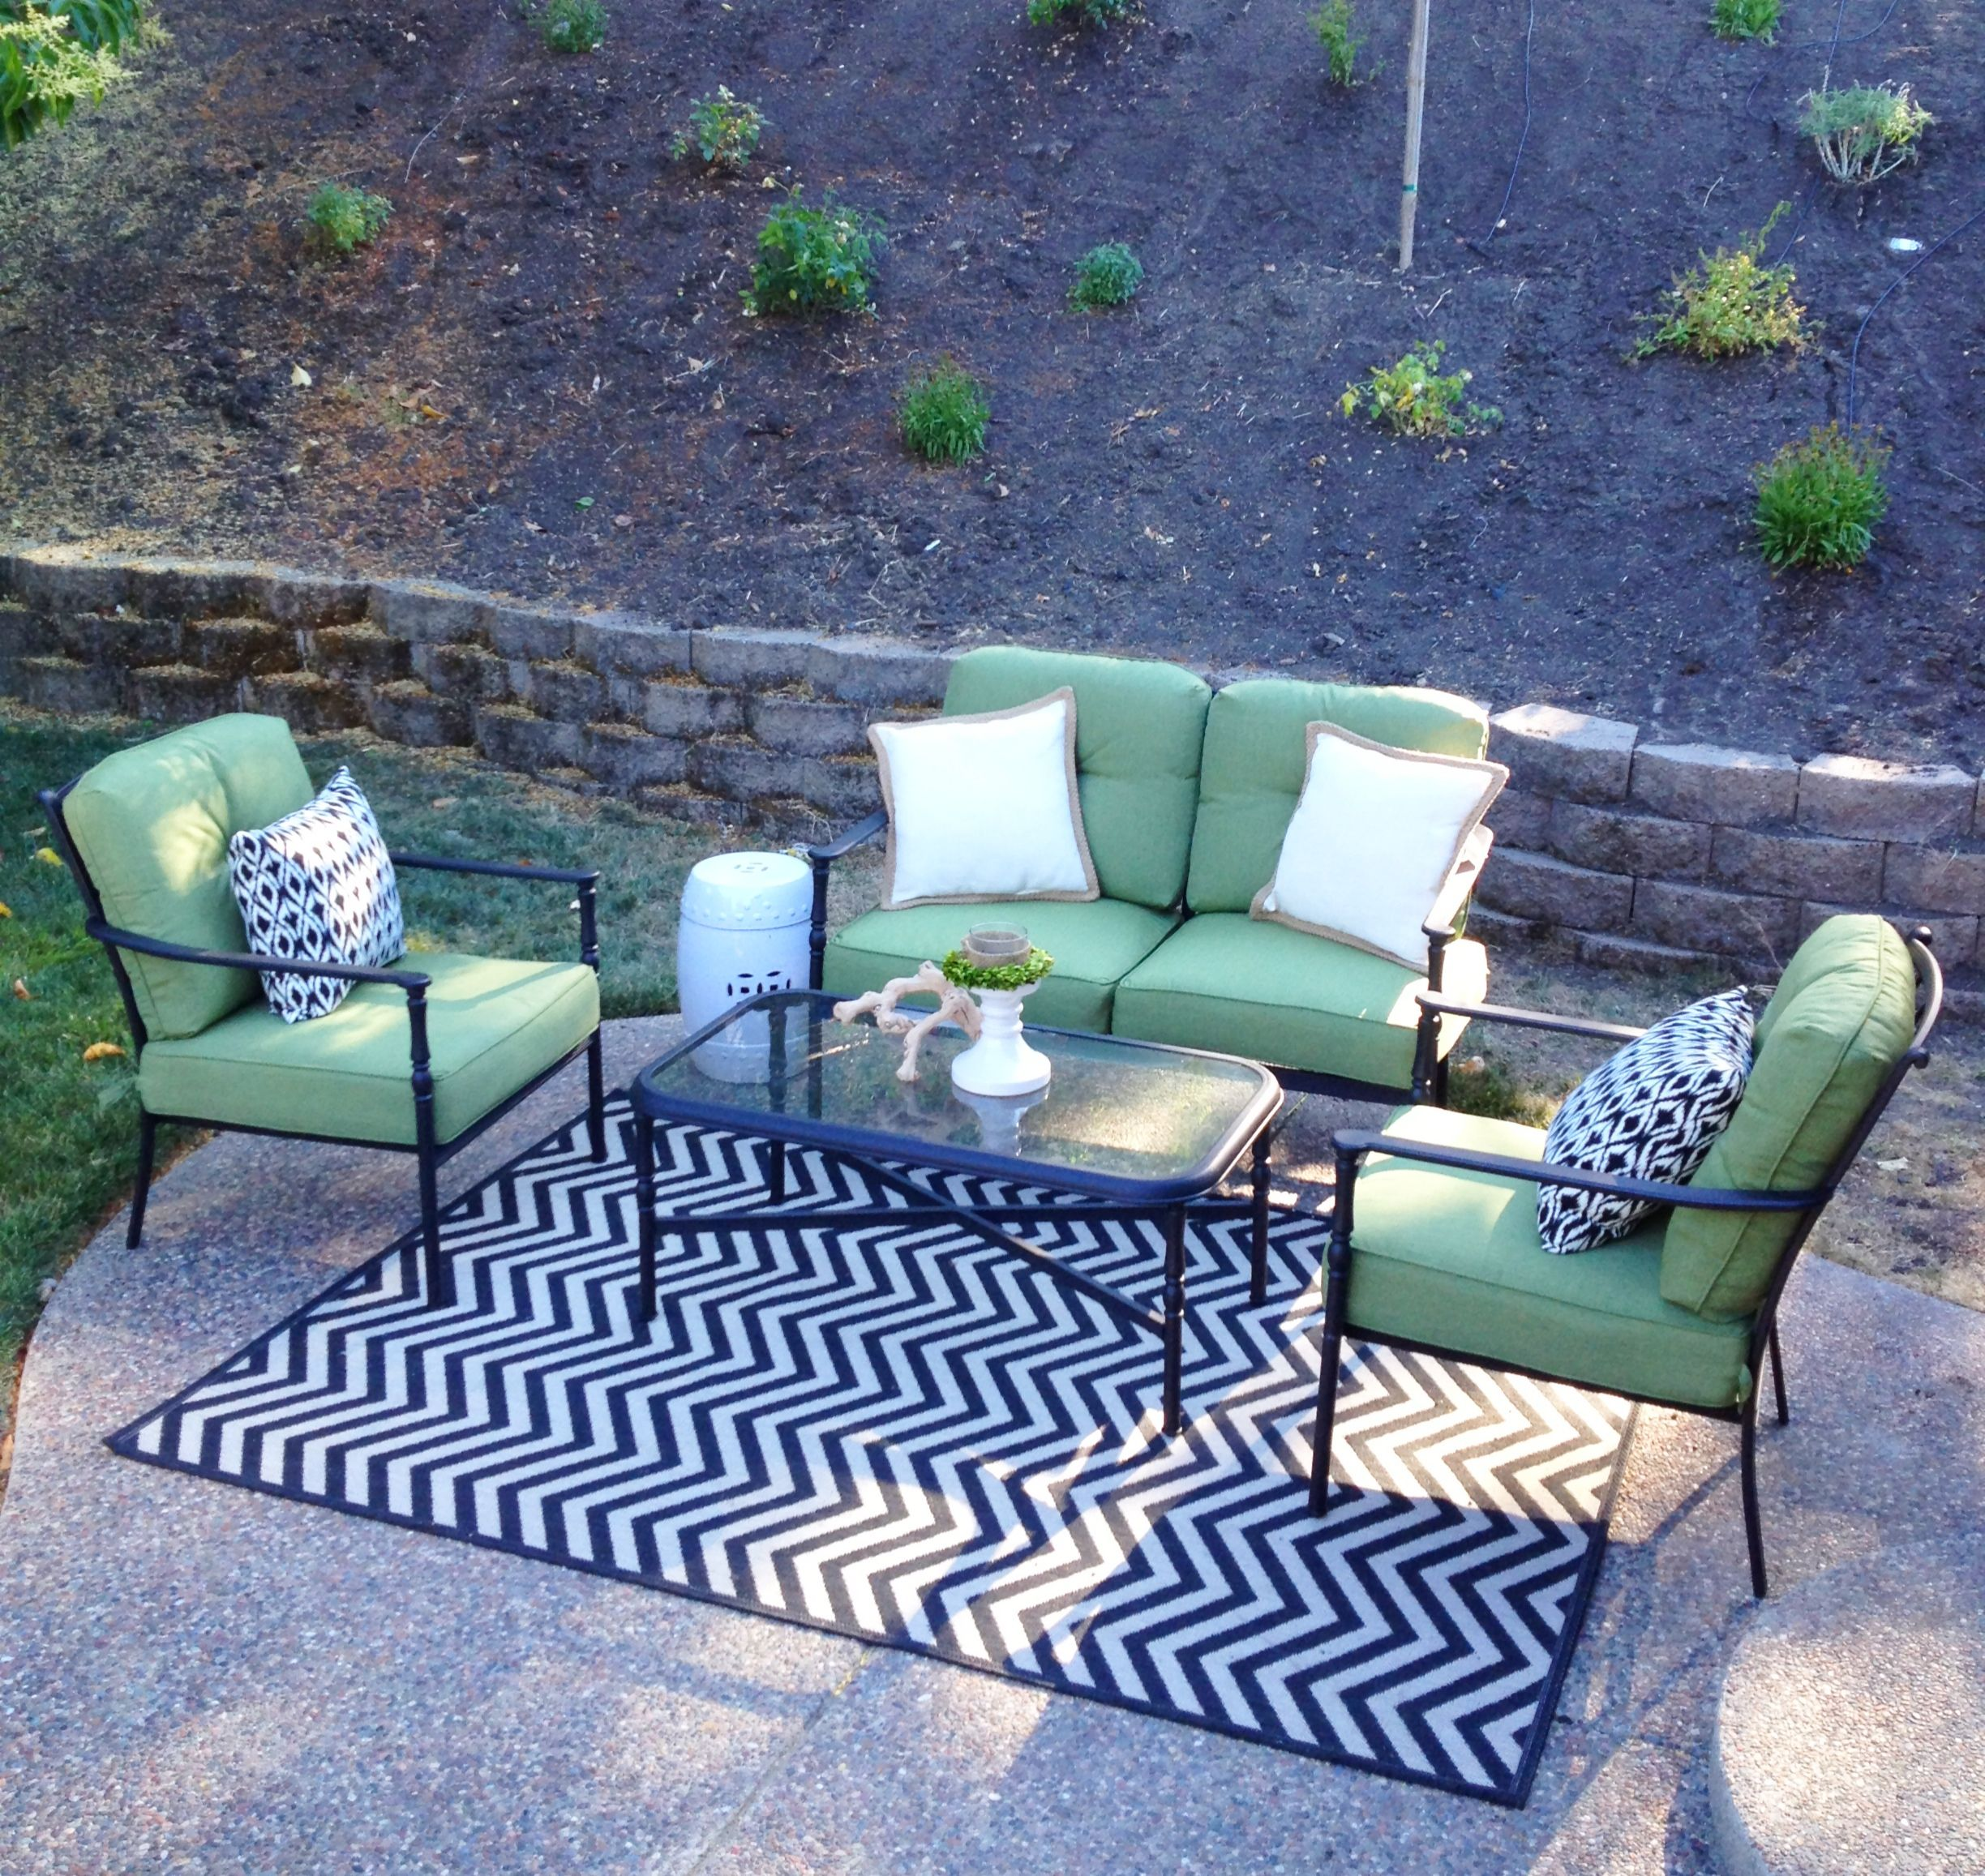 Patio lounge area Furniture from Lowe s indoor outdoor rug from